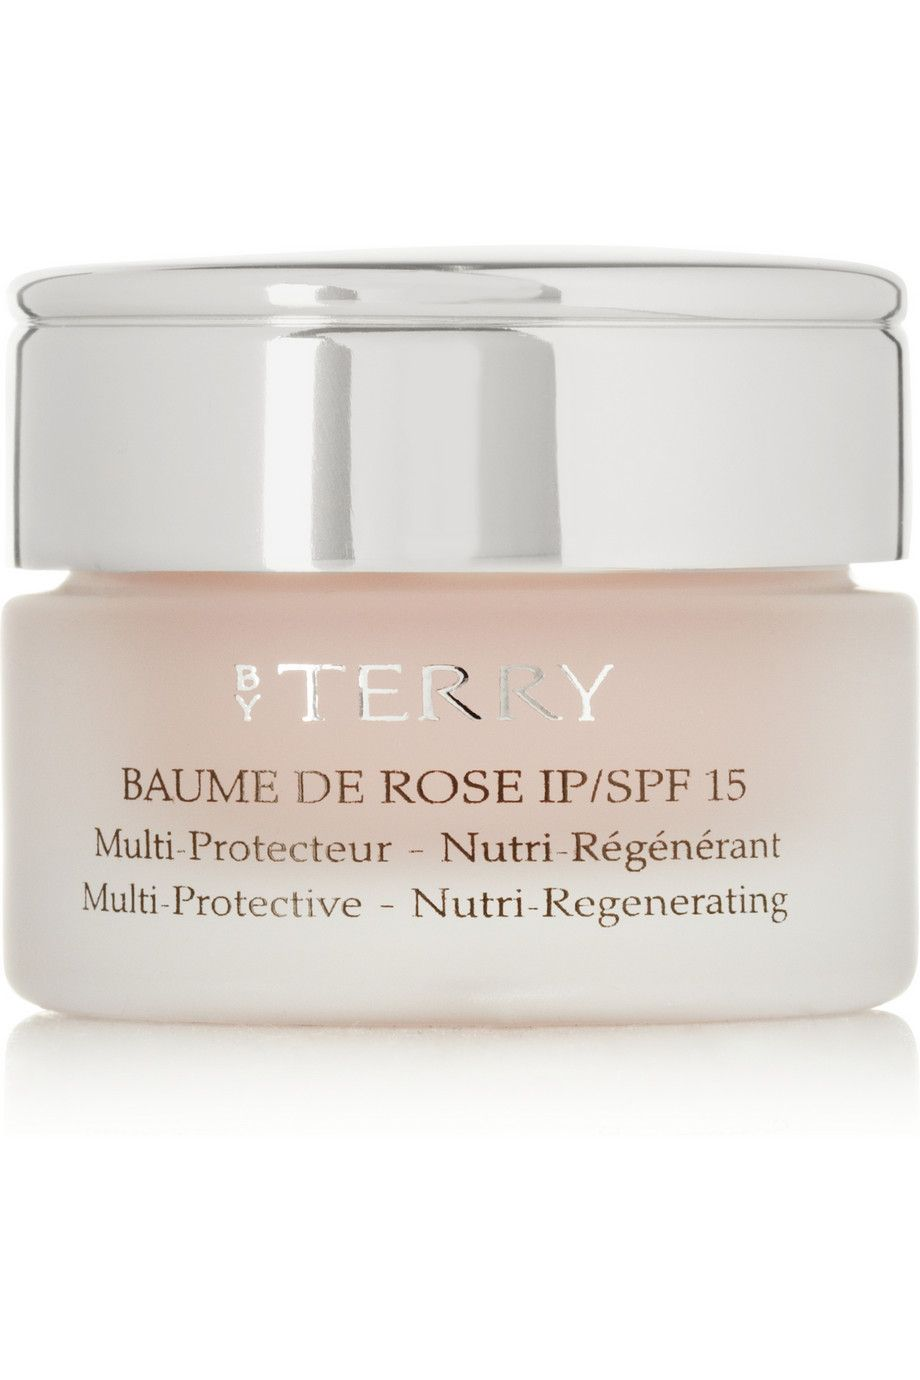 By Terry|Baume De Rose Lip Protectant |Day to night makeup http://youtu.be/wDjNj2CZXnQ